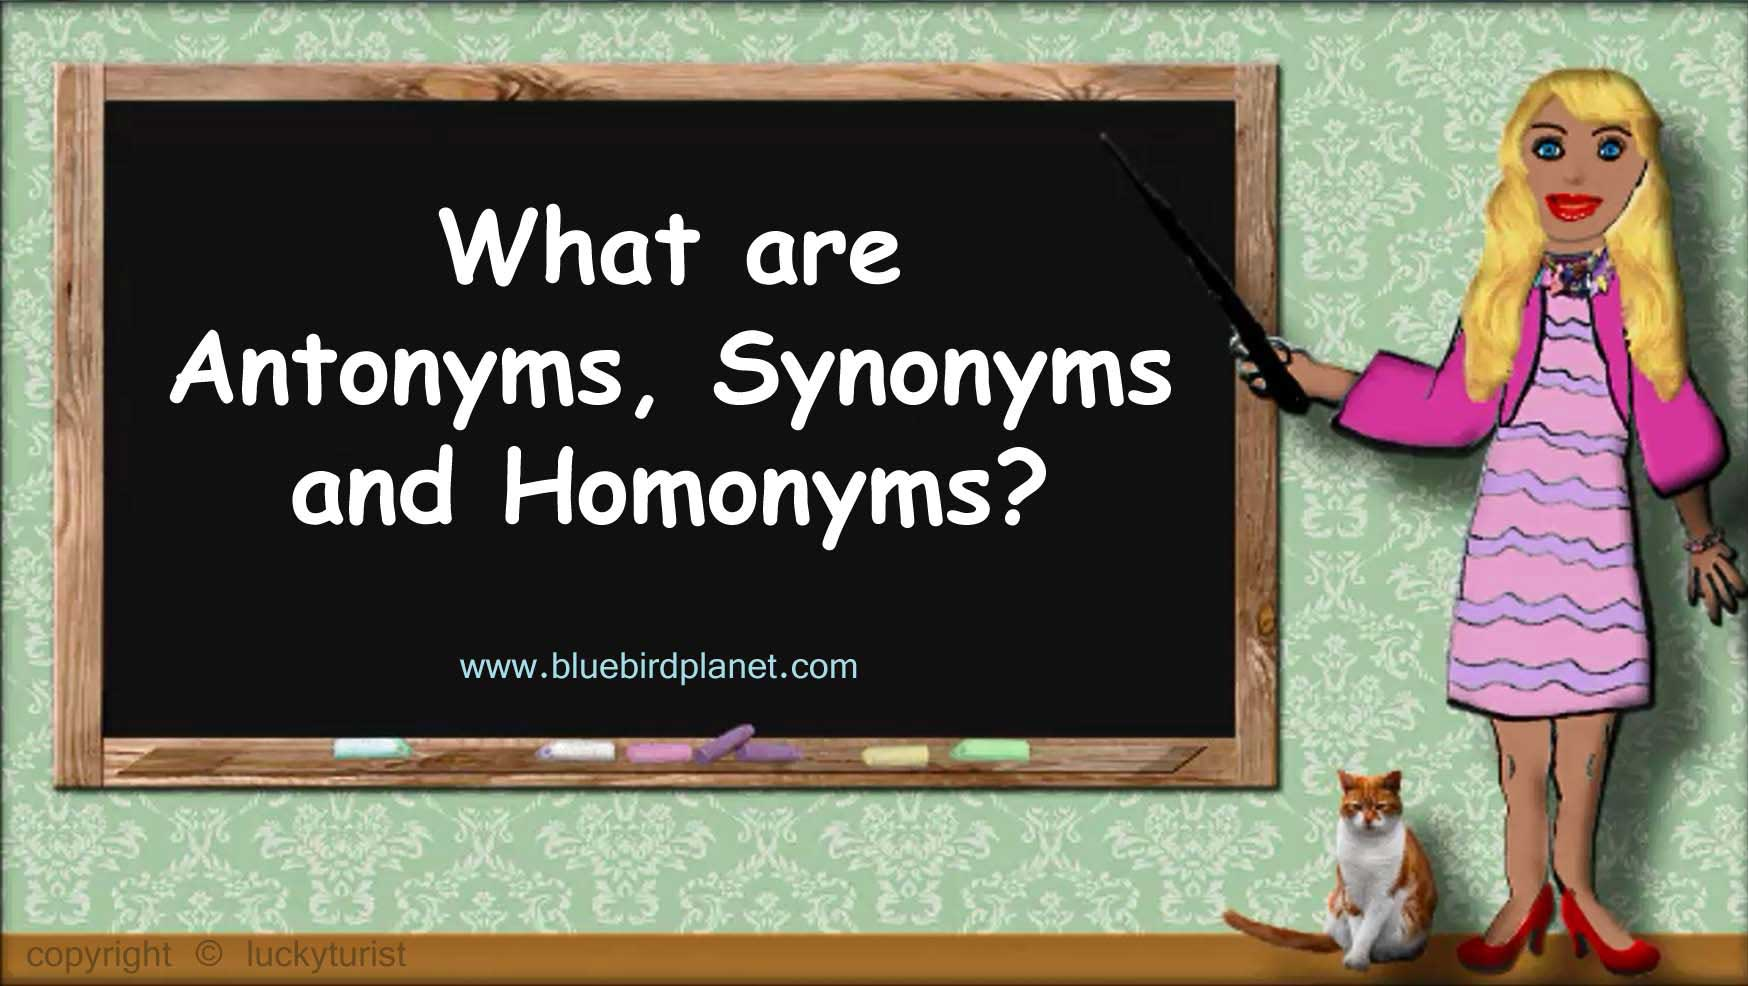 What are antonyms?